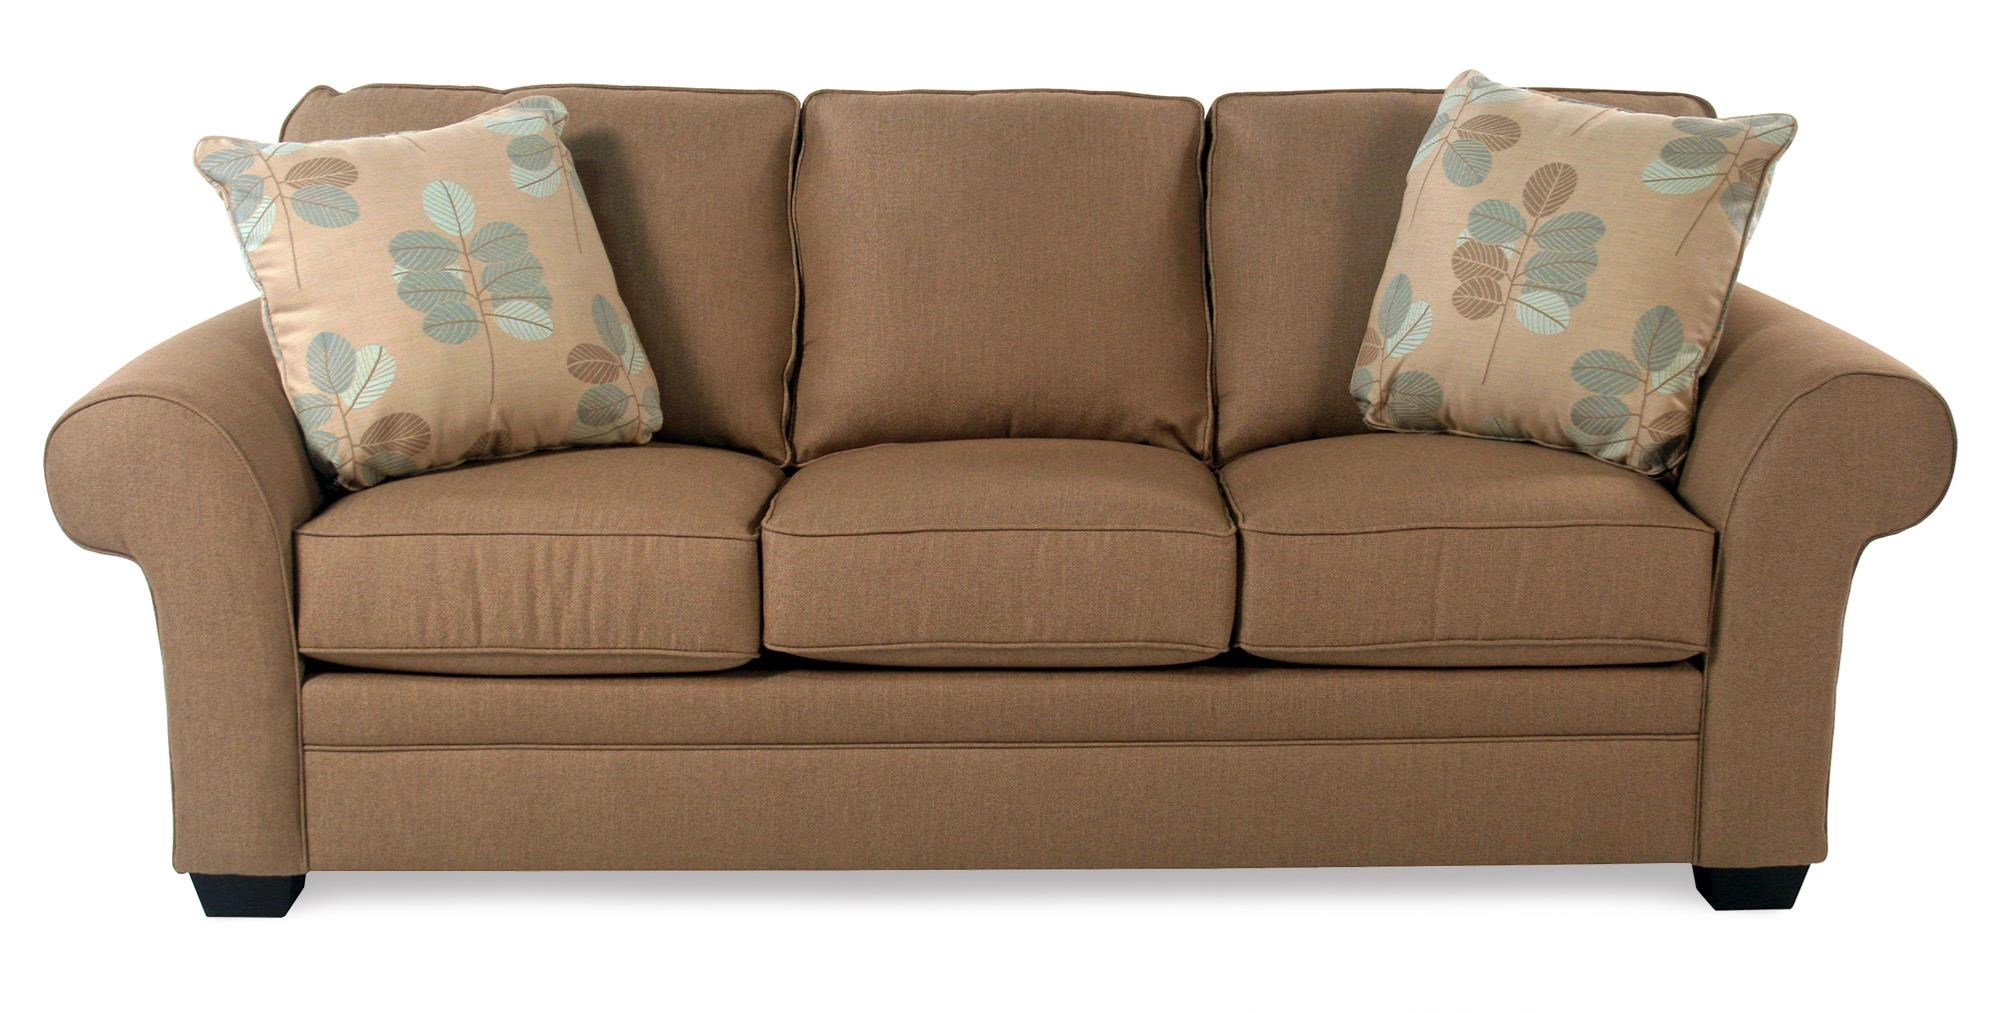 Broyhill Furniture Lagoona Roll Arm Sofa - Item Number: S7902-3-44282-0008